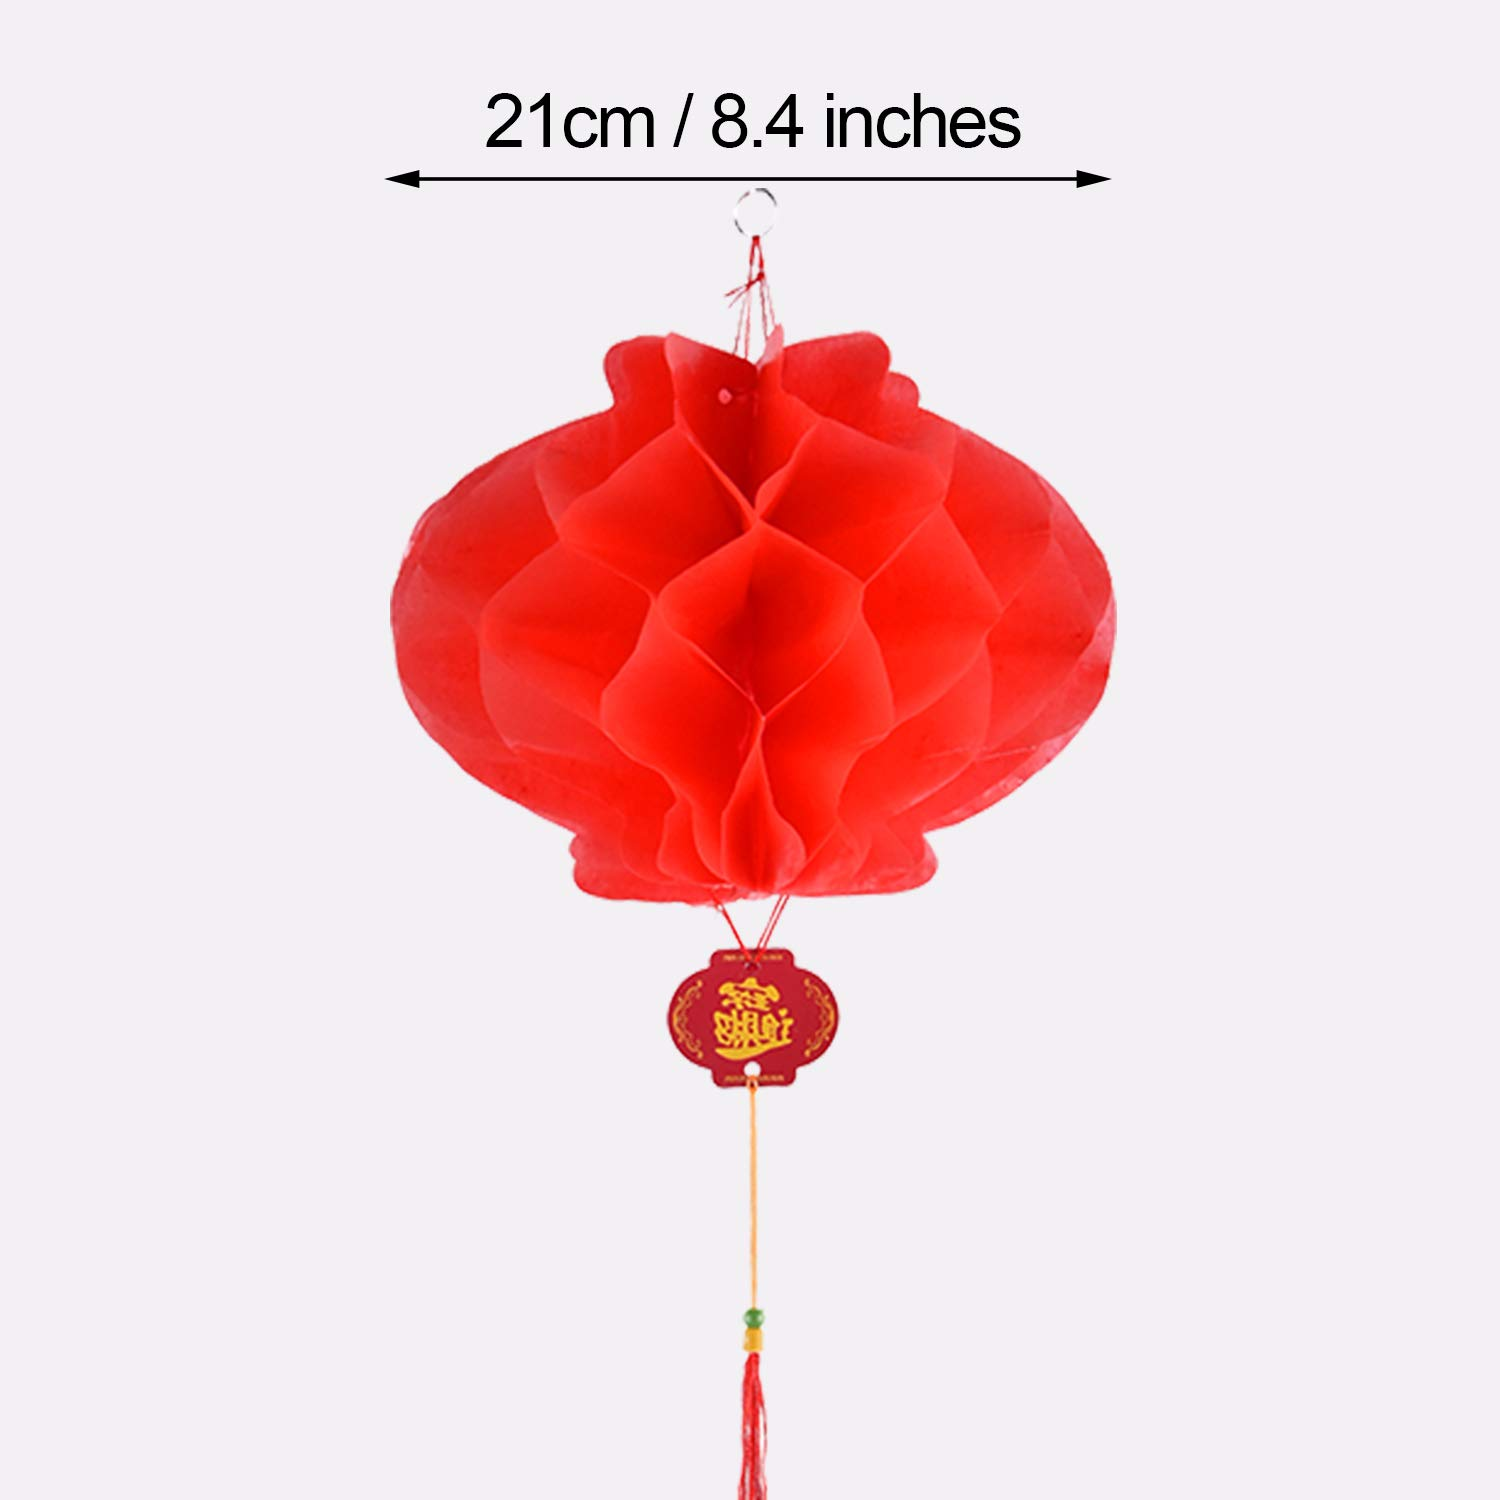 Tatuo 30 Pieces Red Plastic Paper Lantern Red Hanging Lanterns for Chinese Spring Festival Wedding Festive Decoration 8.4 Inches